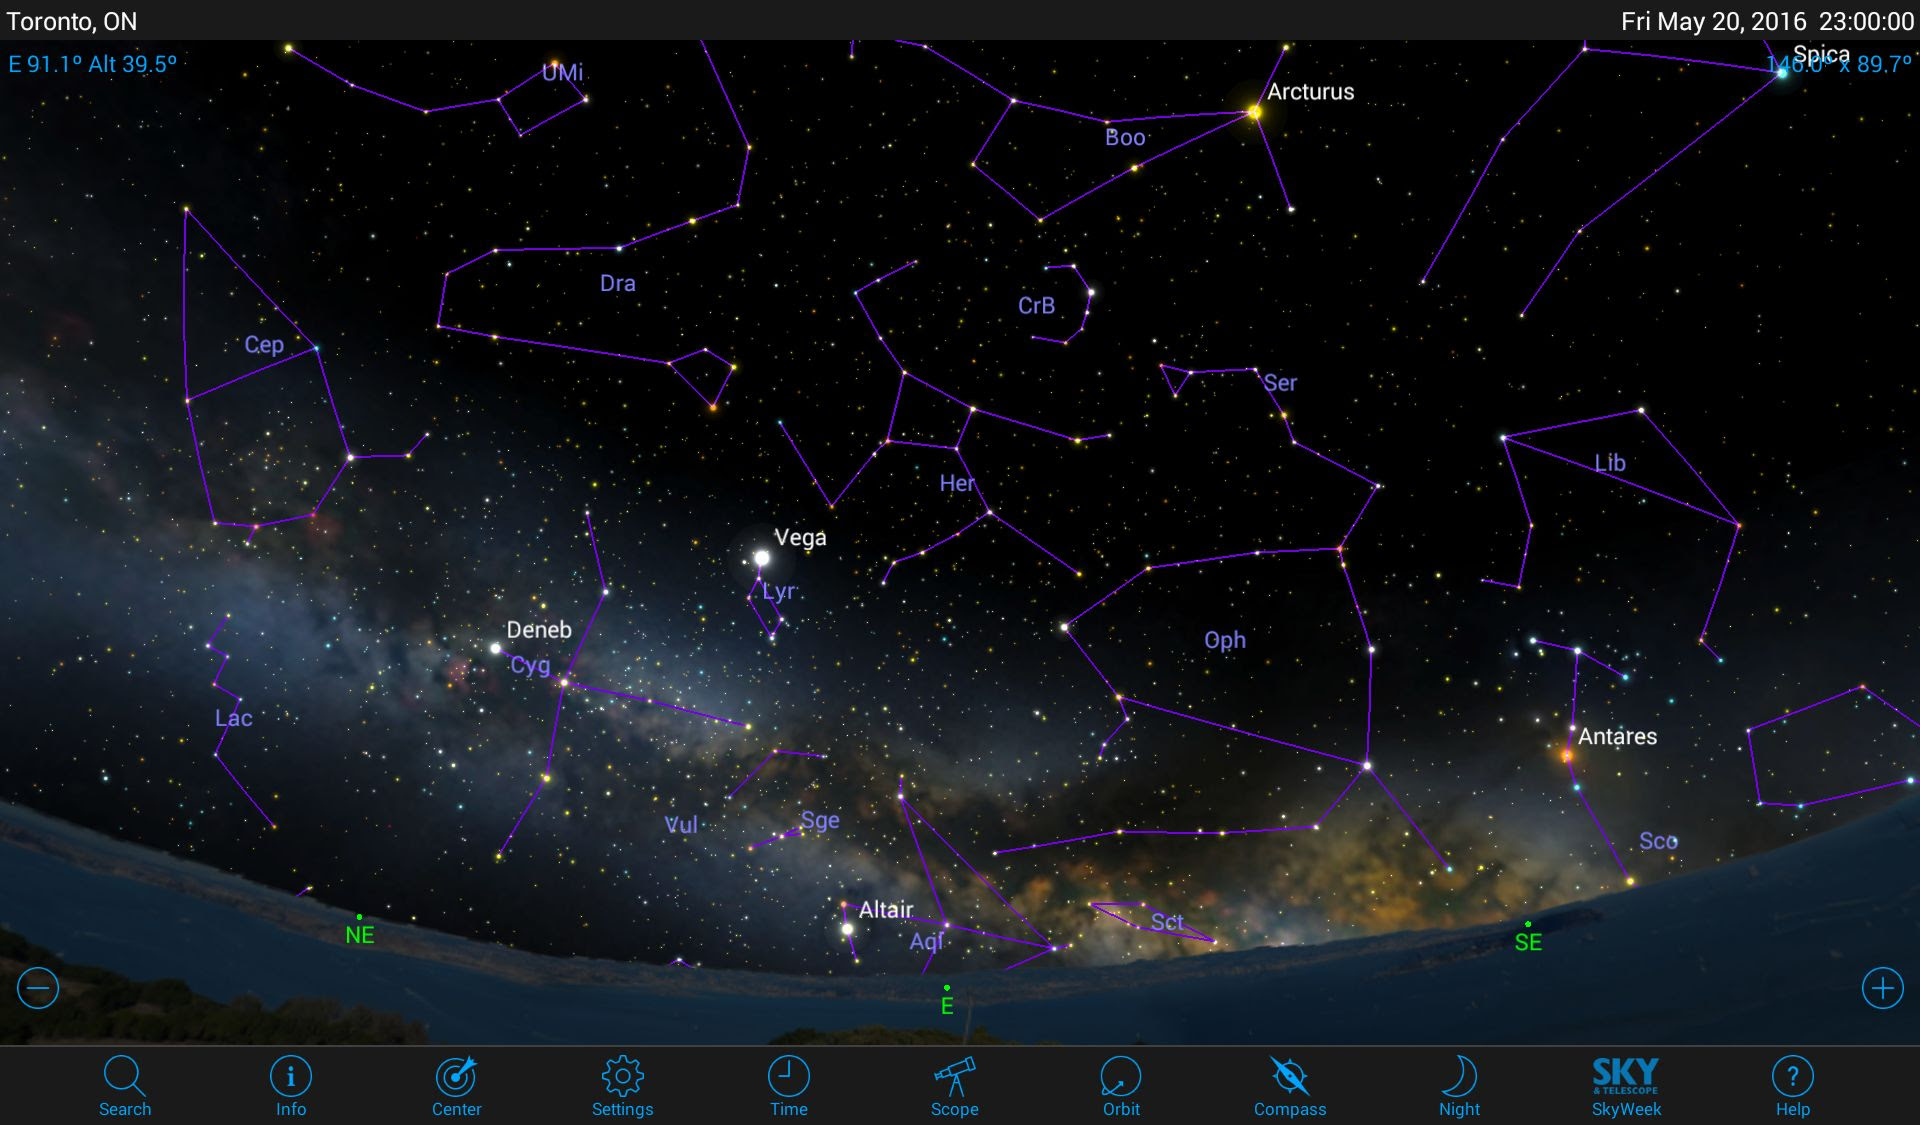 Discover the Treasures of Hercules with Mobile Astronomy Apps